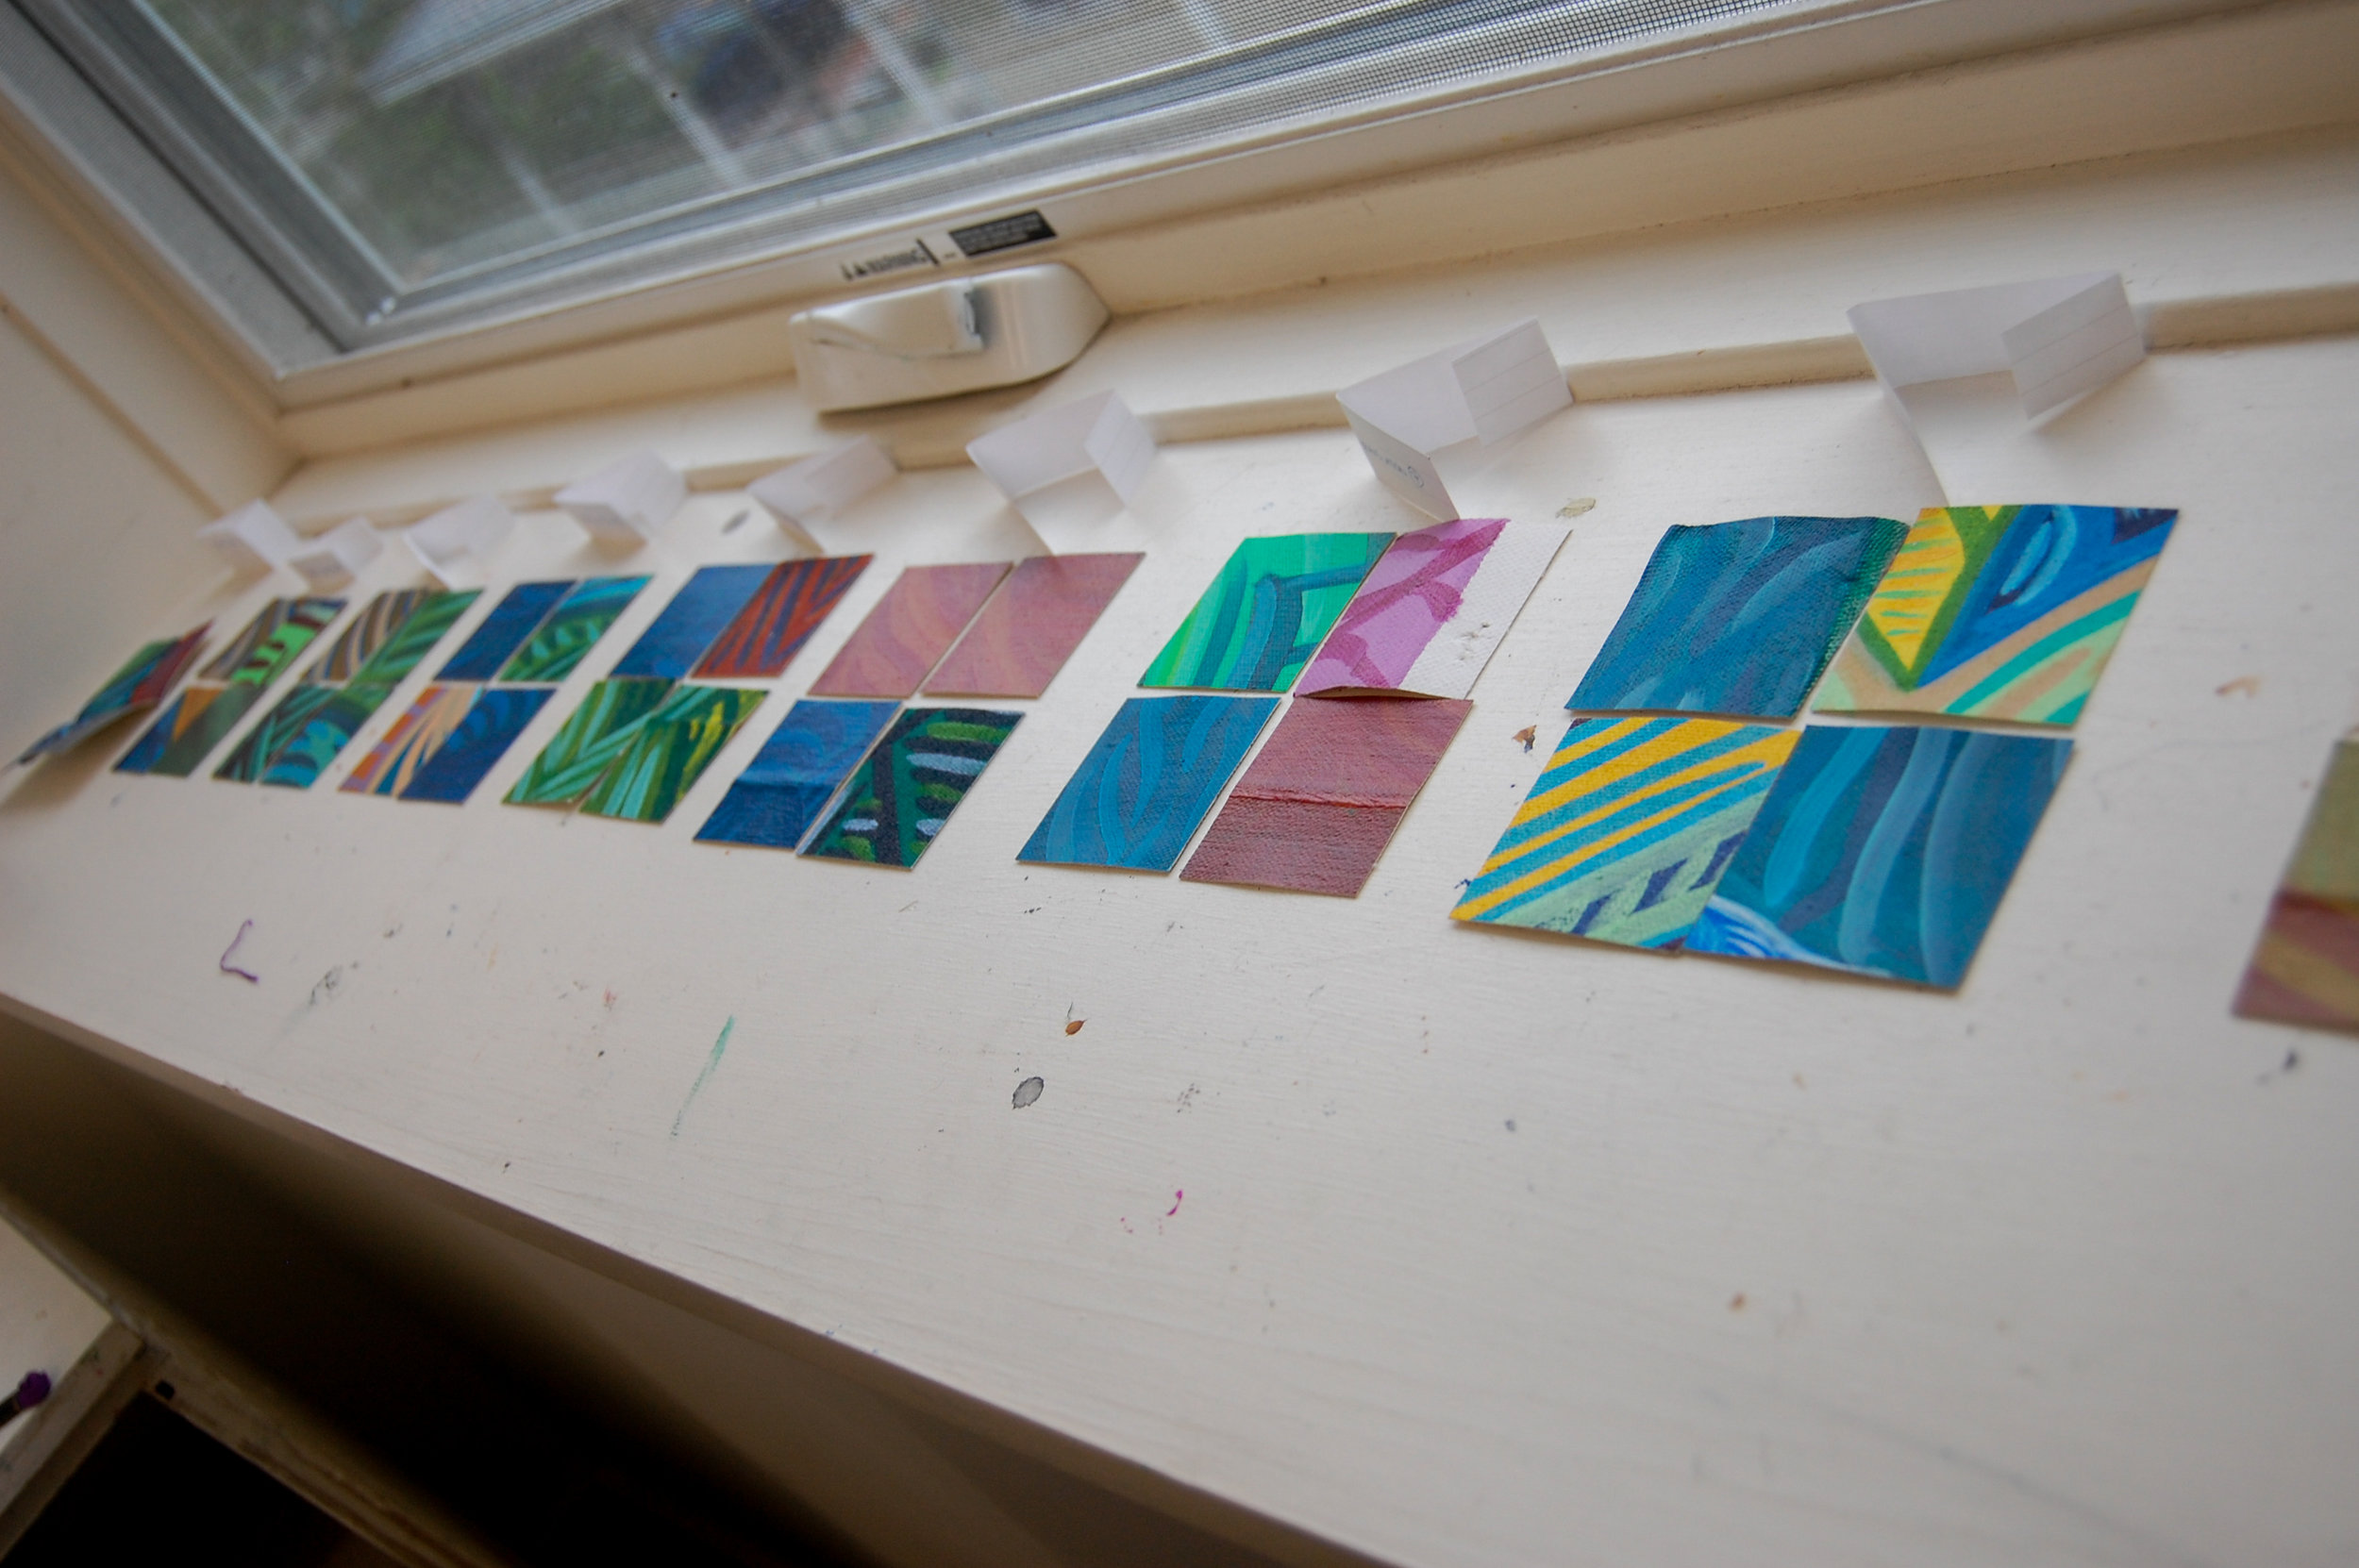 Translation Series  paintings pre-planned and laid out on a window sill.